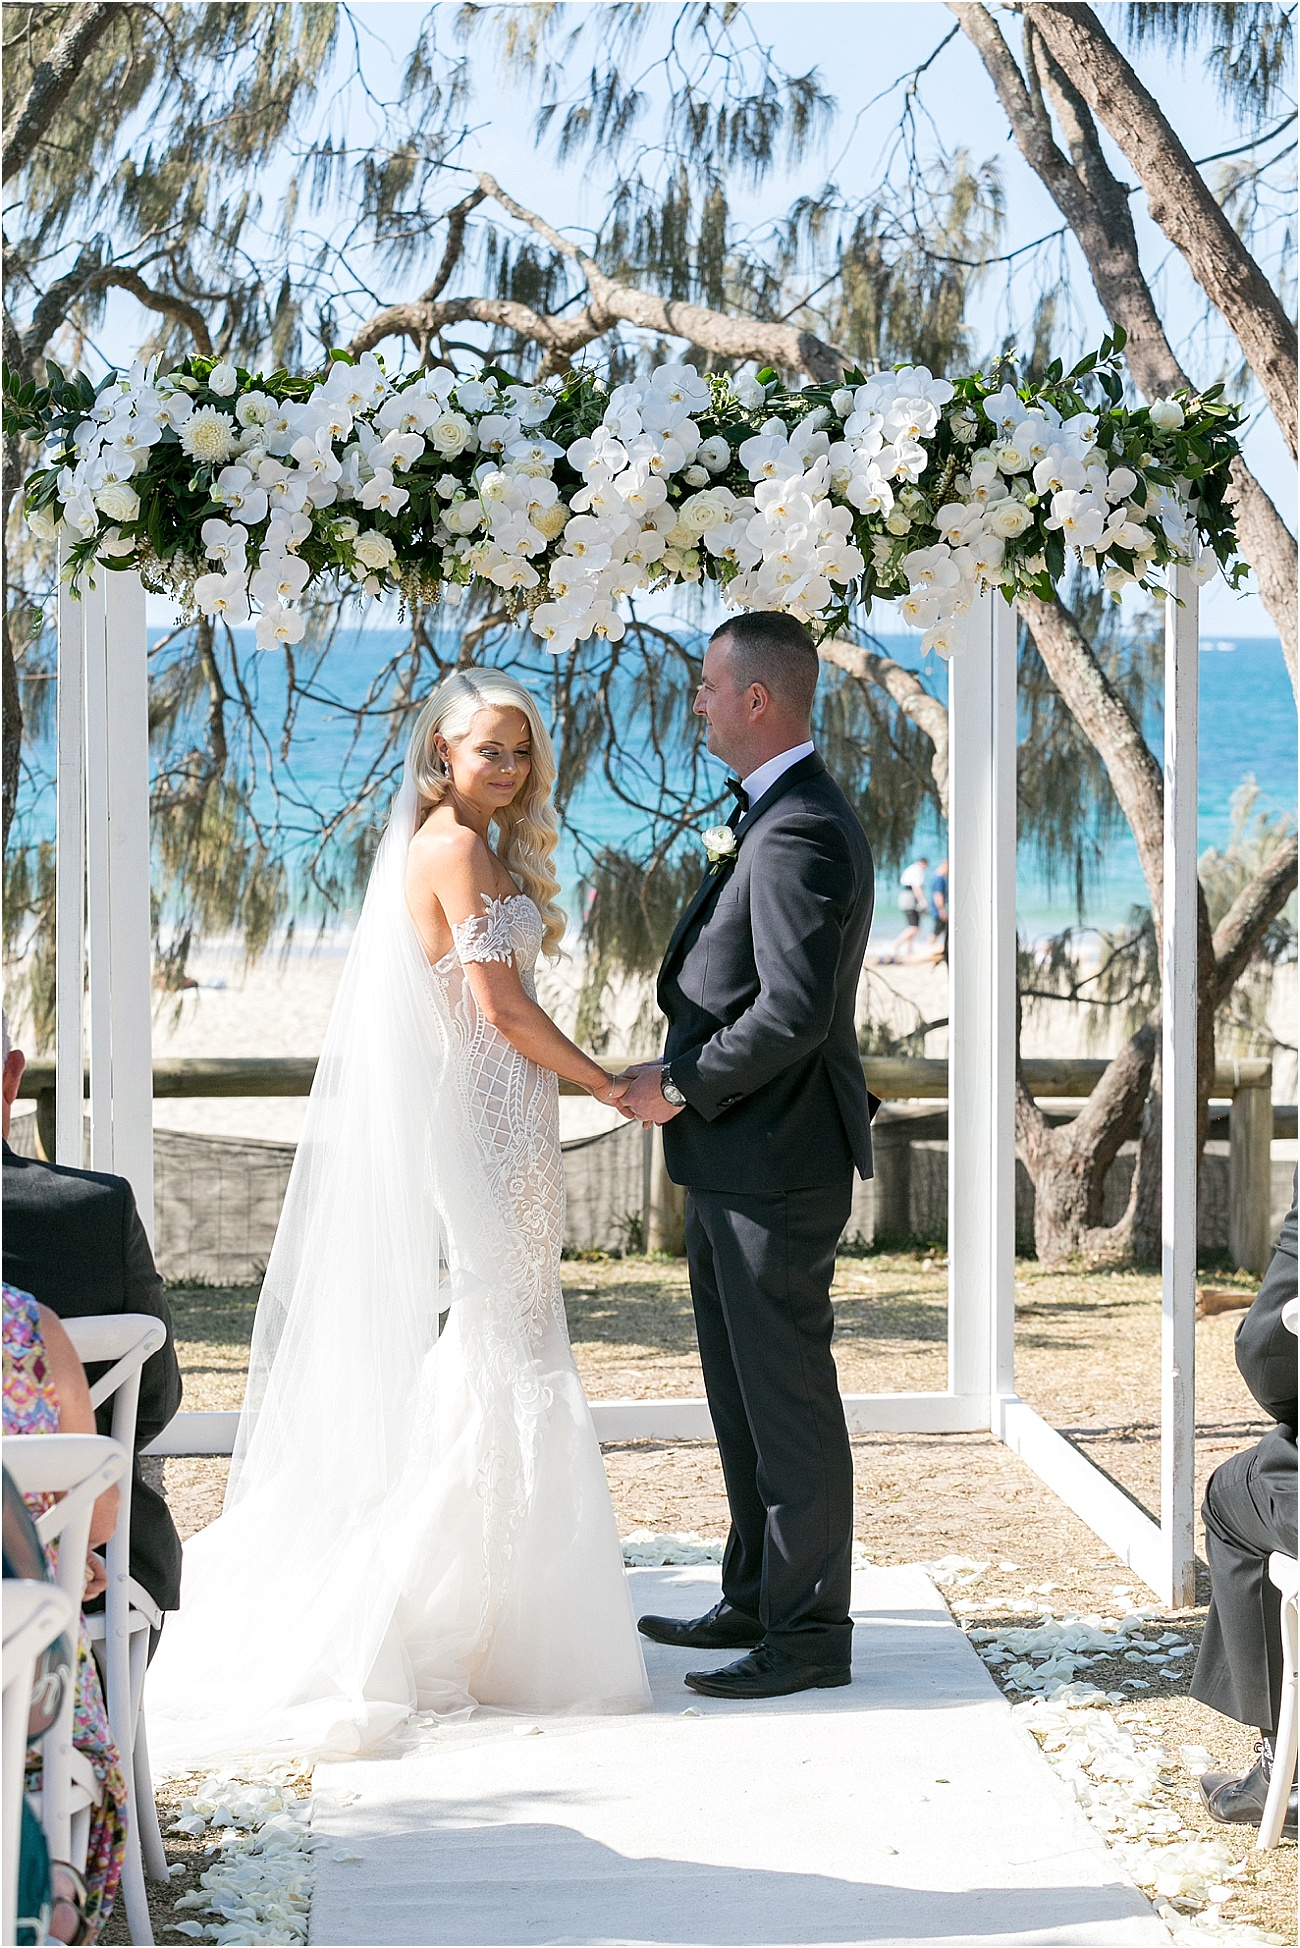 White and green wedding arbour